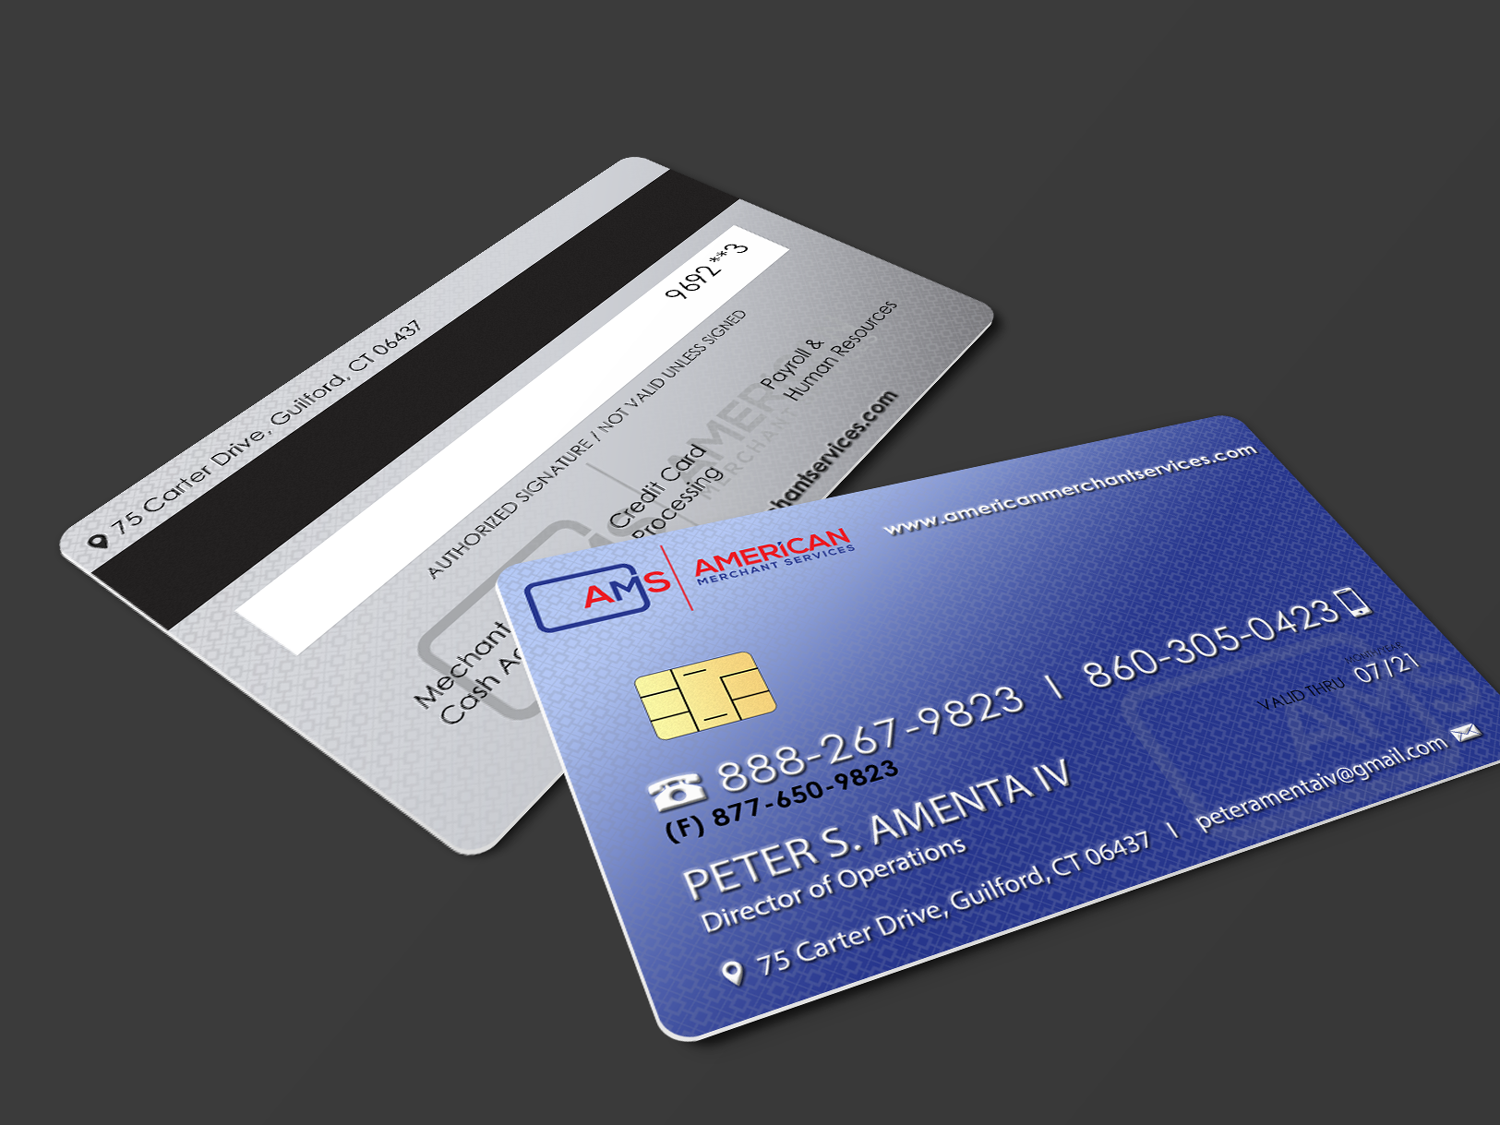 Elegant playful credit card business card design for american business card design by riz for american merchant services llc design 15370438 reheart Image collections